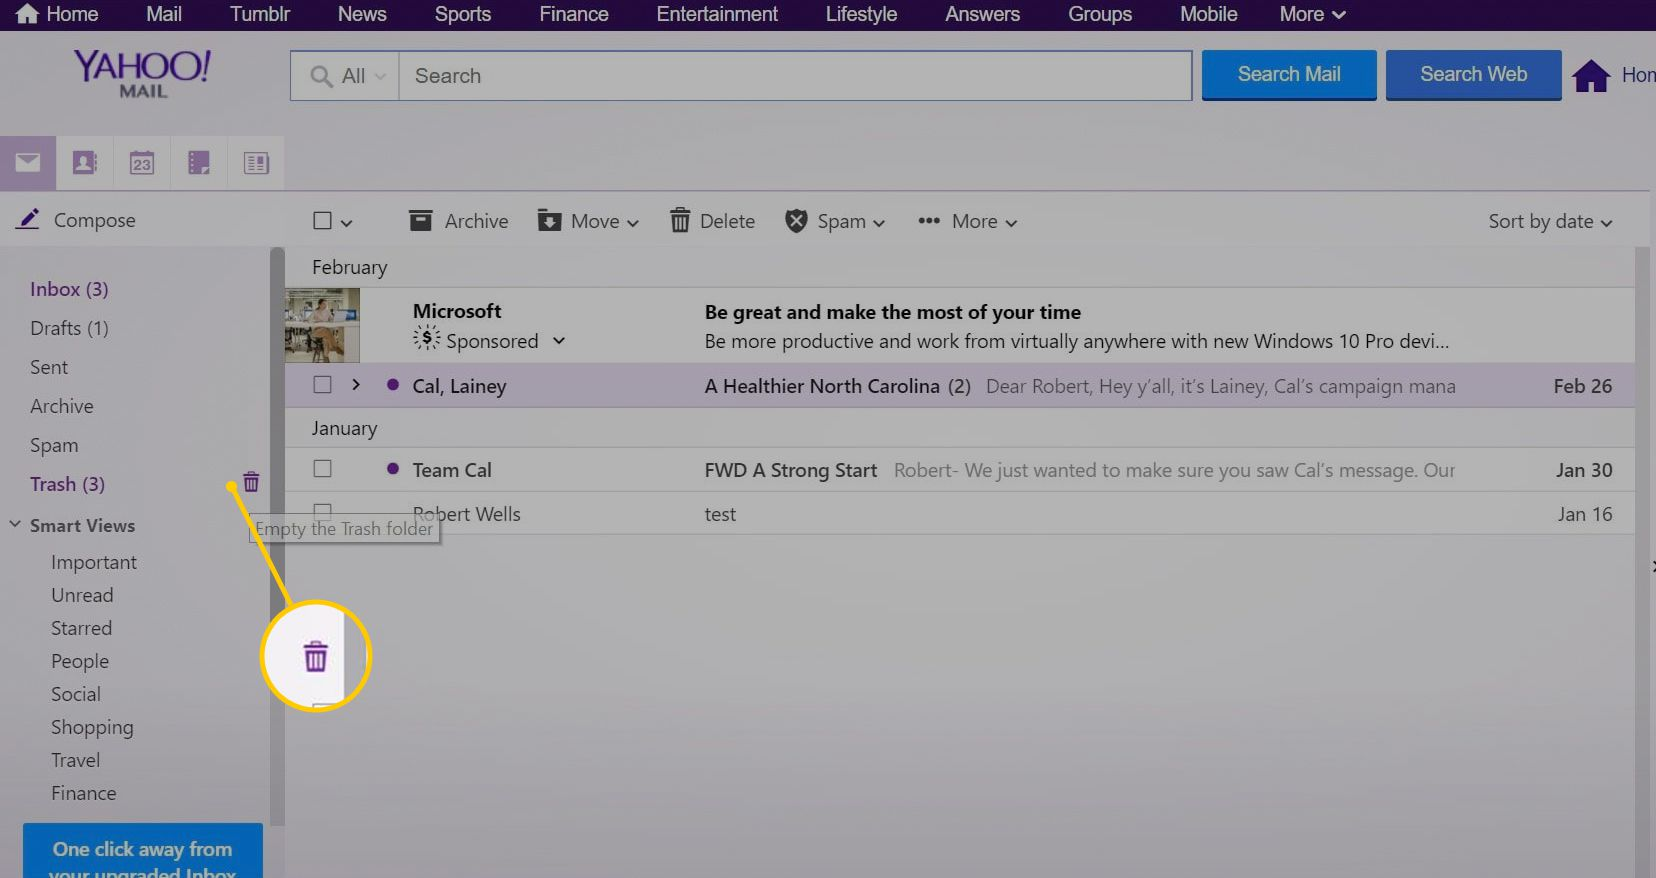 How to Empty the Trash in Yahoo Mail